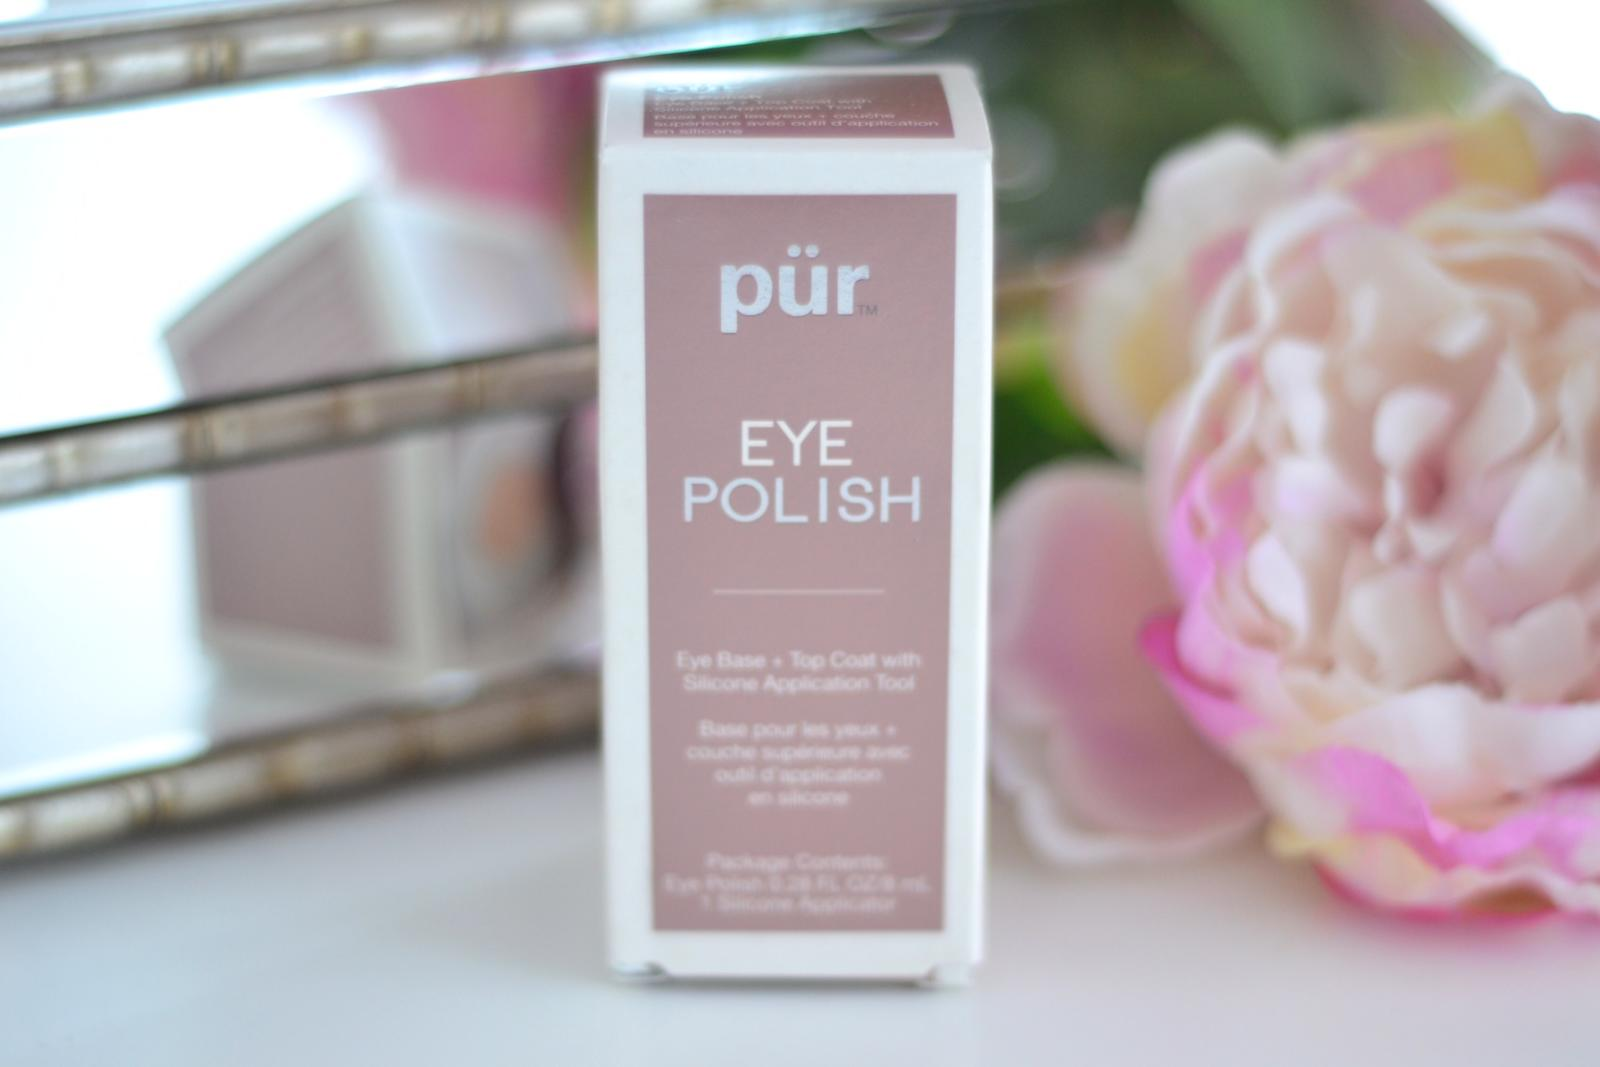 pur-eye-polish-packaging